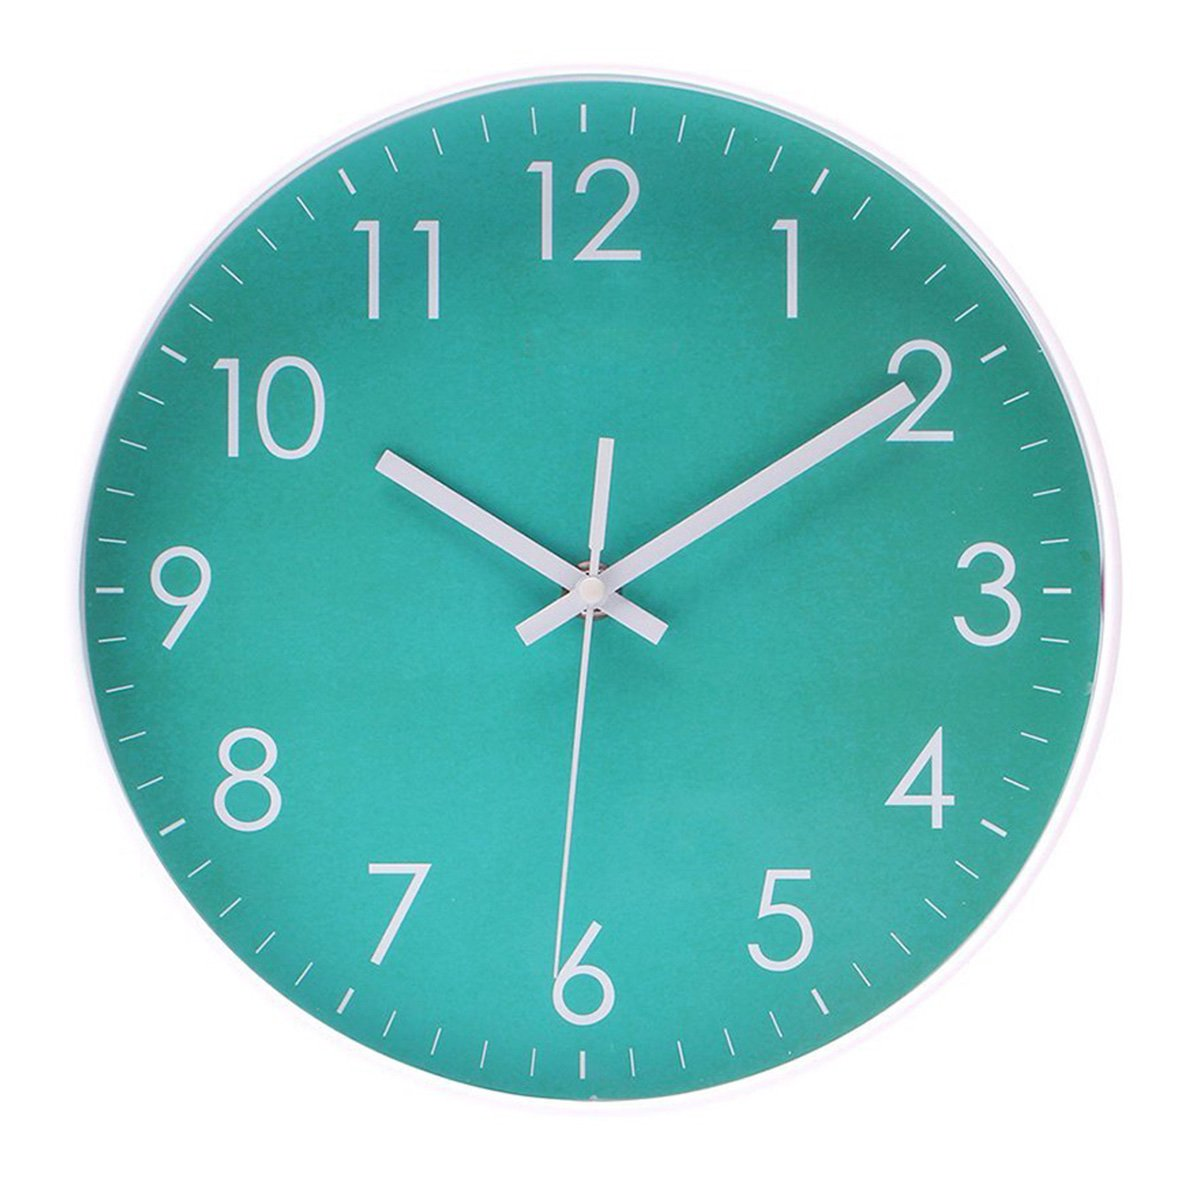 Epy Huts Modern Simple Wall Clock Indoor Non-Ticking Silent Quartz Quiet Sweep Movement Wall Clcok for Office,Bathroom,Livingroom Decorative 10 Inch Teal